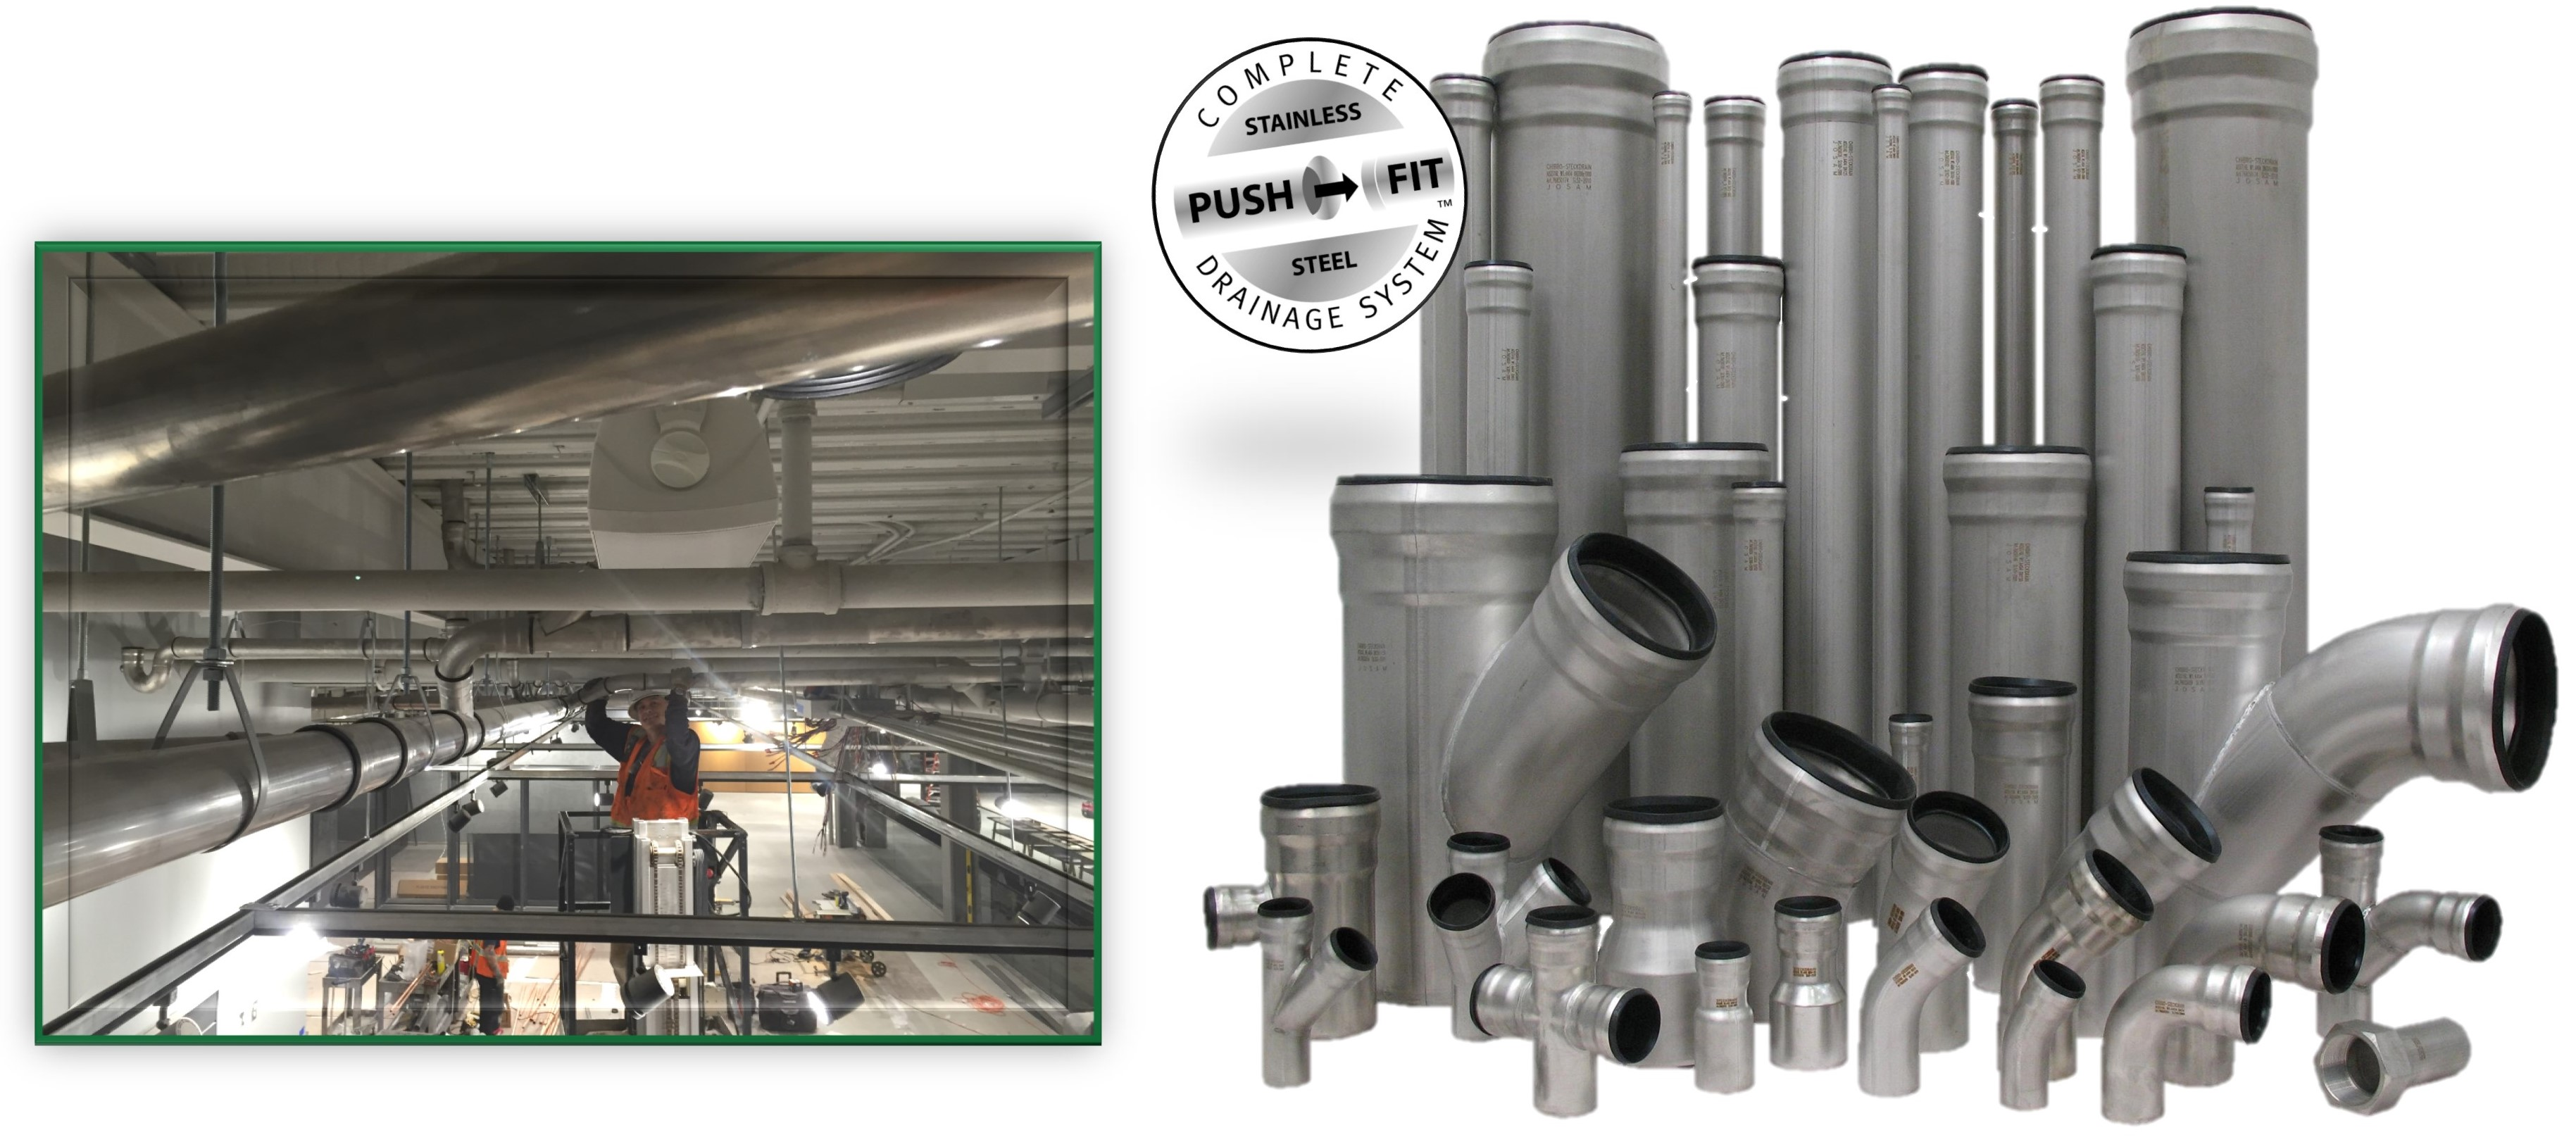 Stainless Steel Push Fit Pipe System Josam